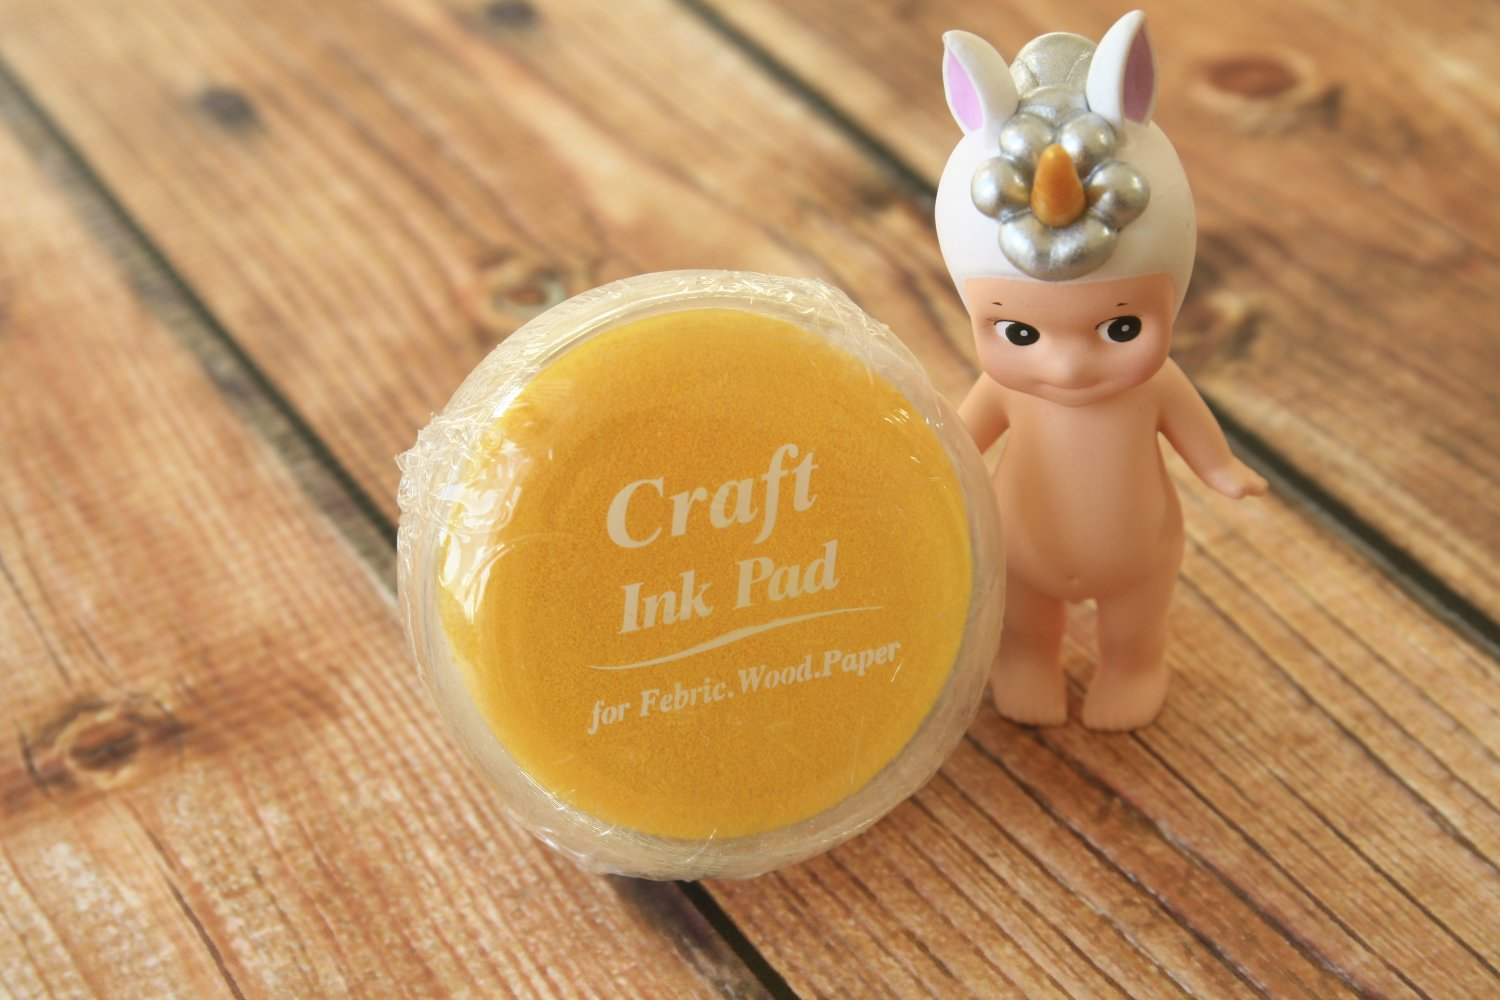 Yellow Crystal Craft Ink Pad Ver 02 rubber stamp pad